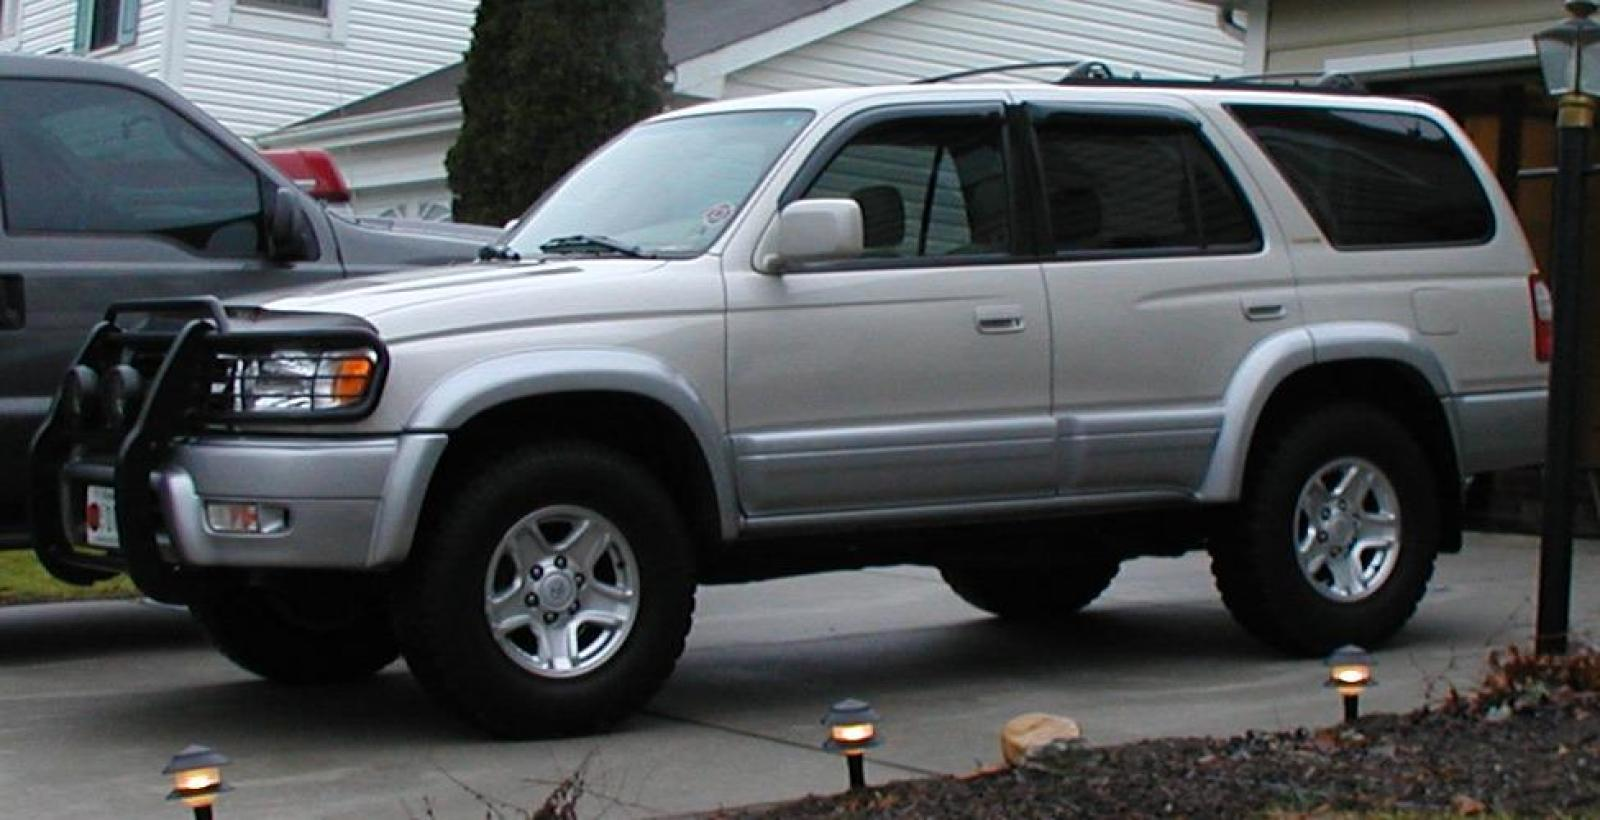 800 1024 1280 1600 Origin 1999 Toyota 4Runner ...